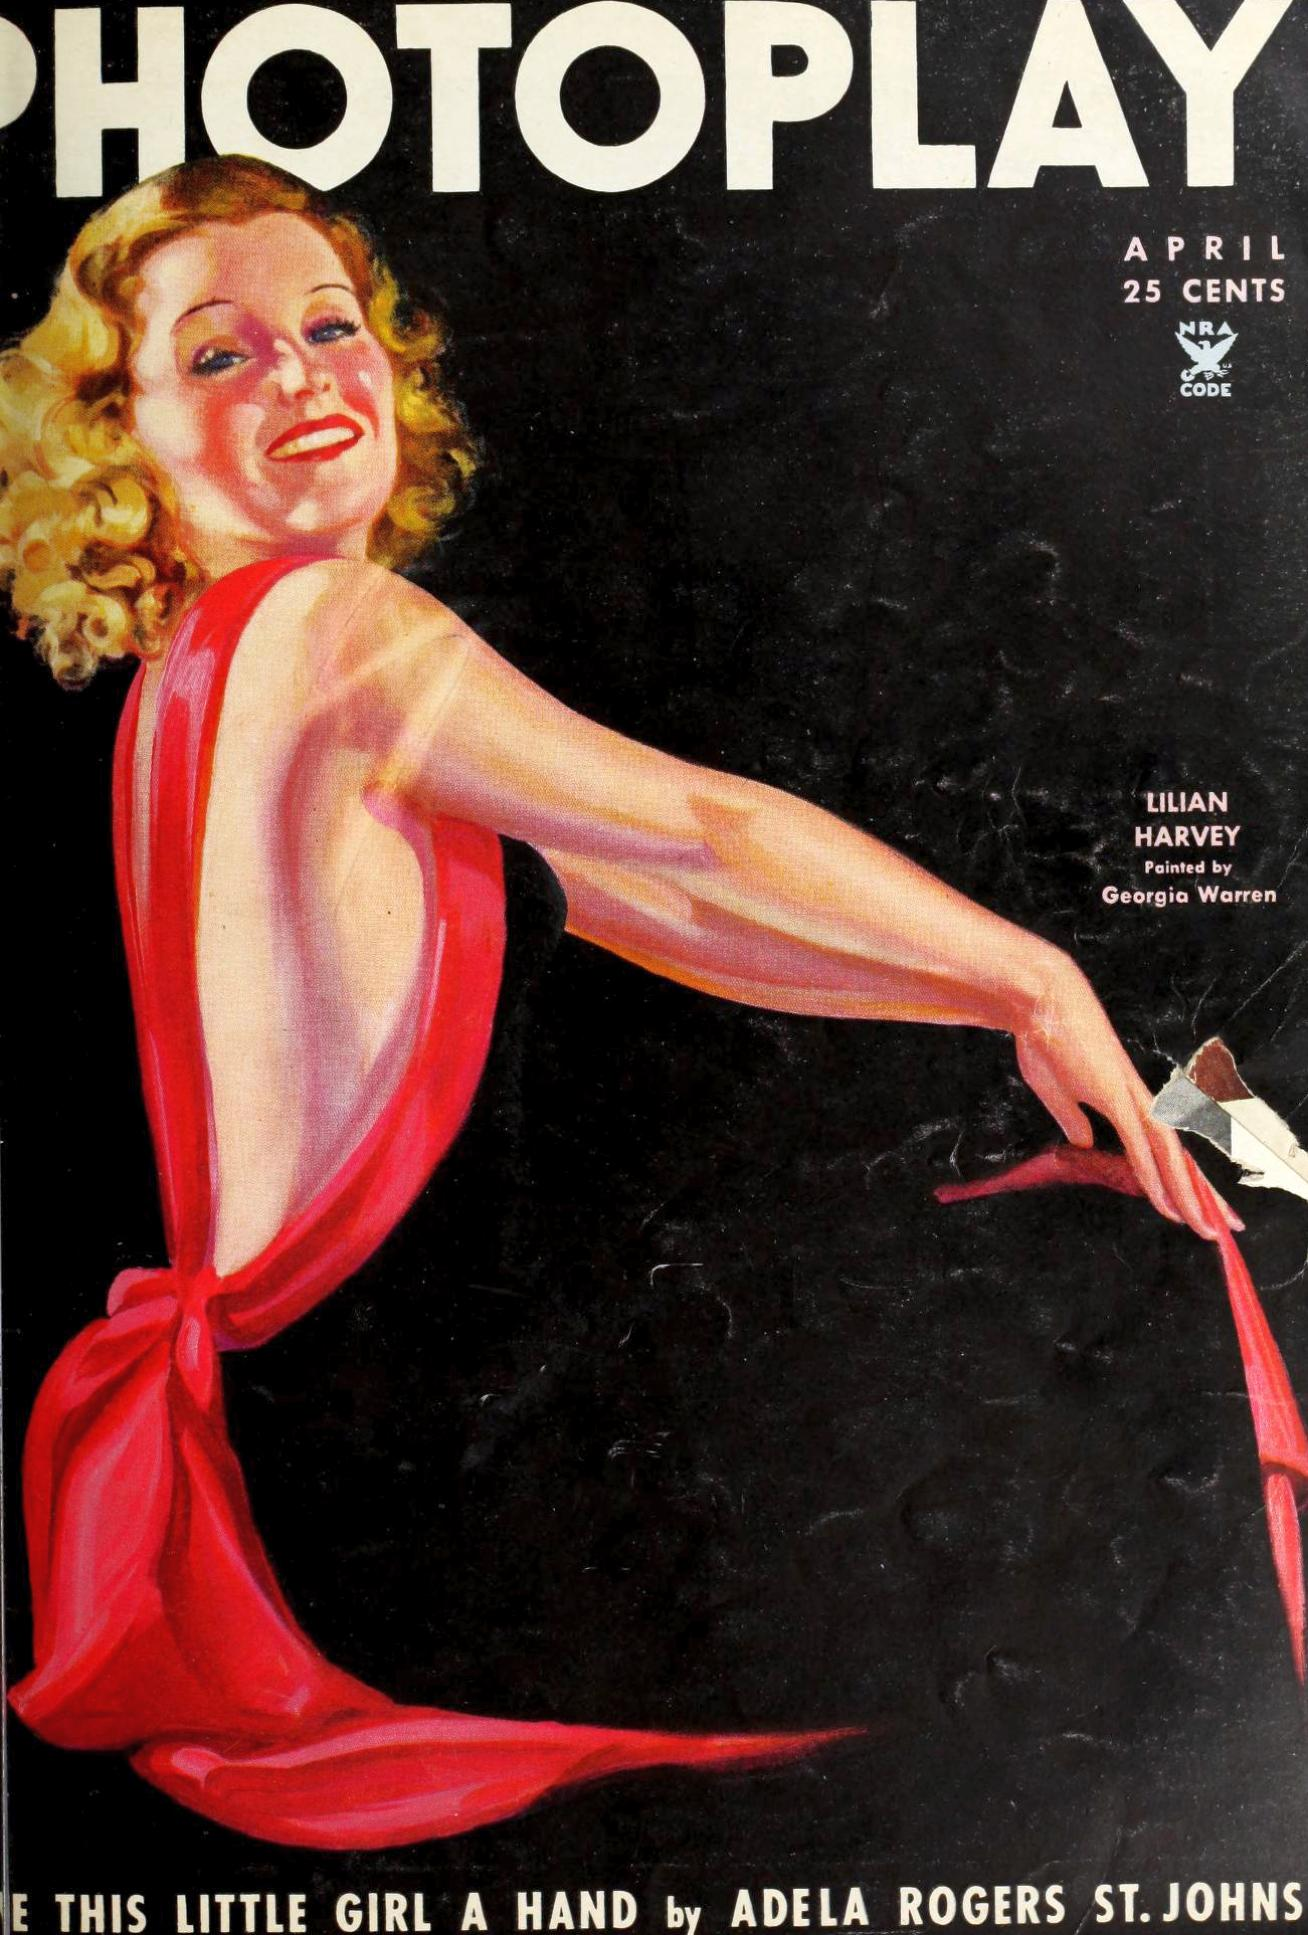 photoplay april 1935 cover large